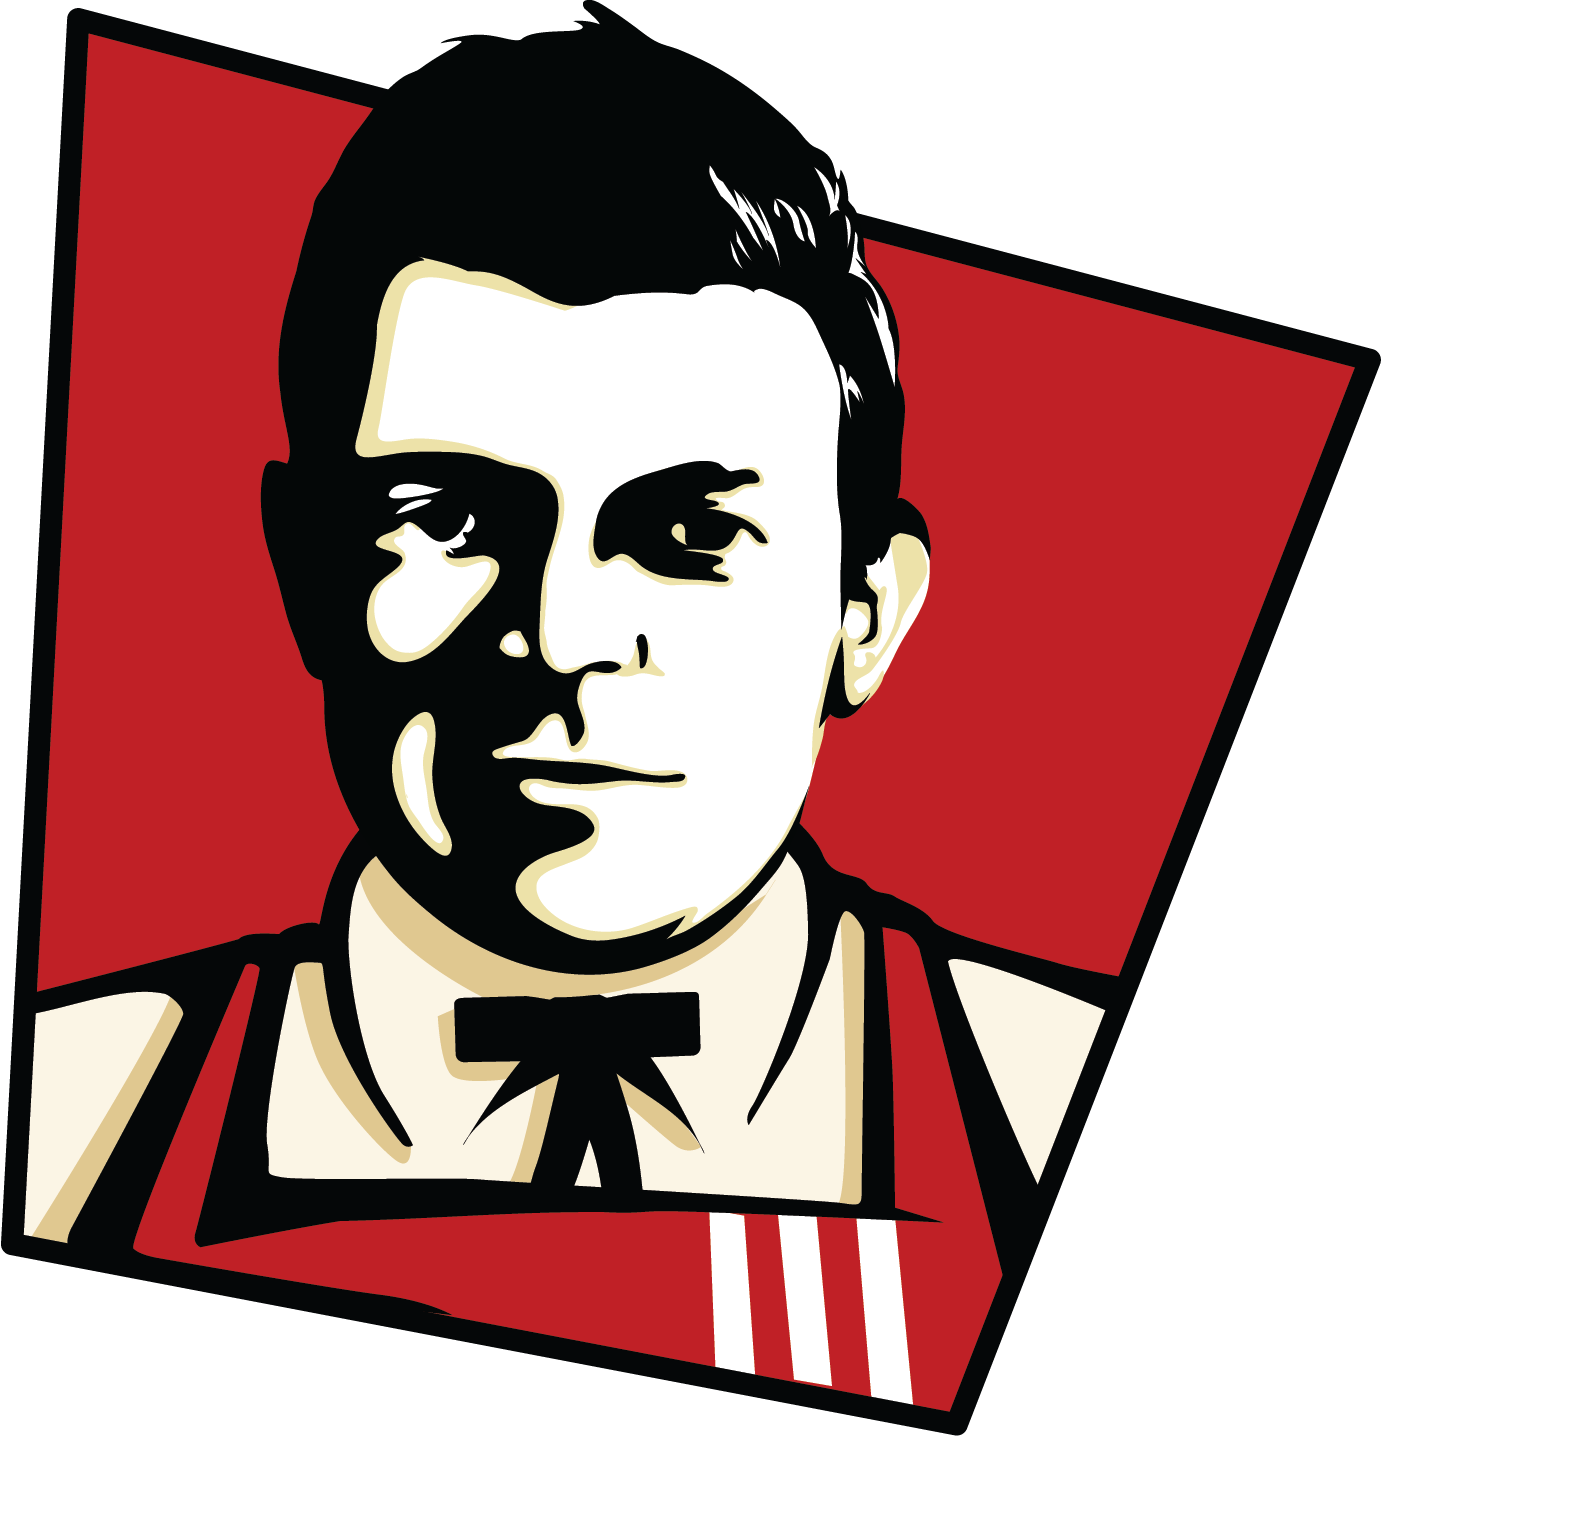 I will draw you in kfc logo style caricature pop arts drawing freestyle illustration - Poulet dessin ...